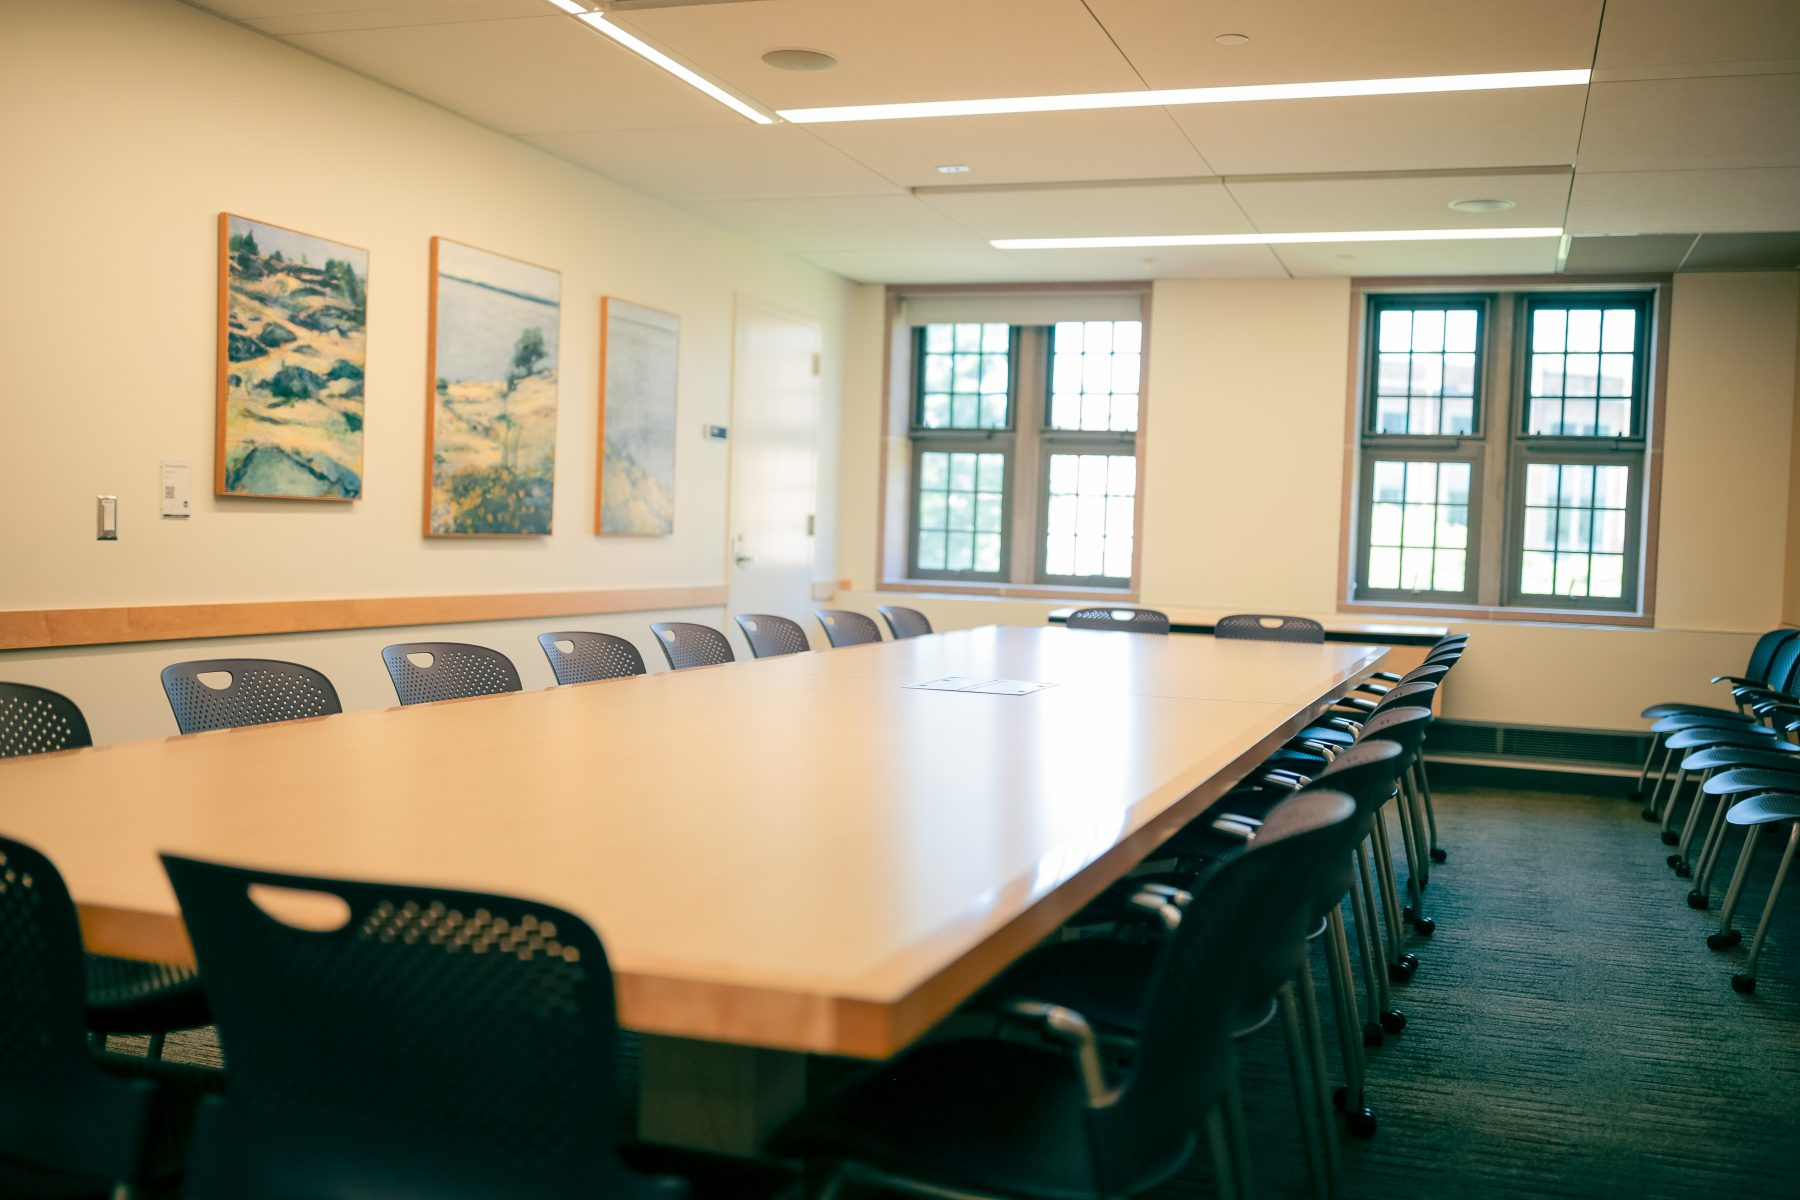 This conference room features art on the South wall